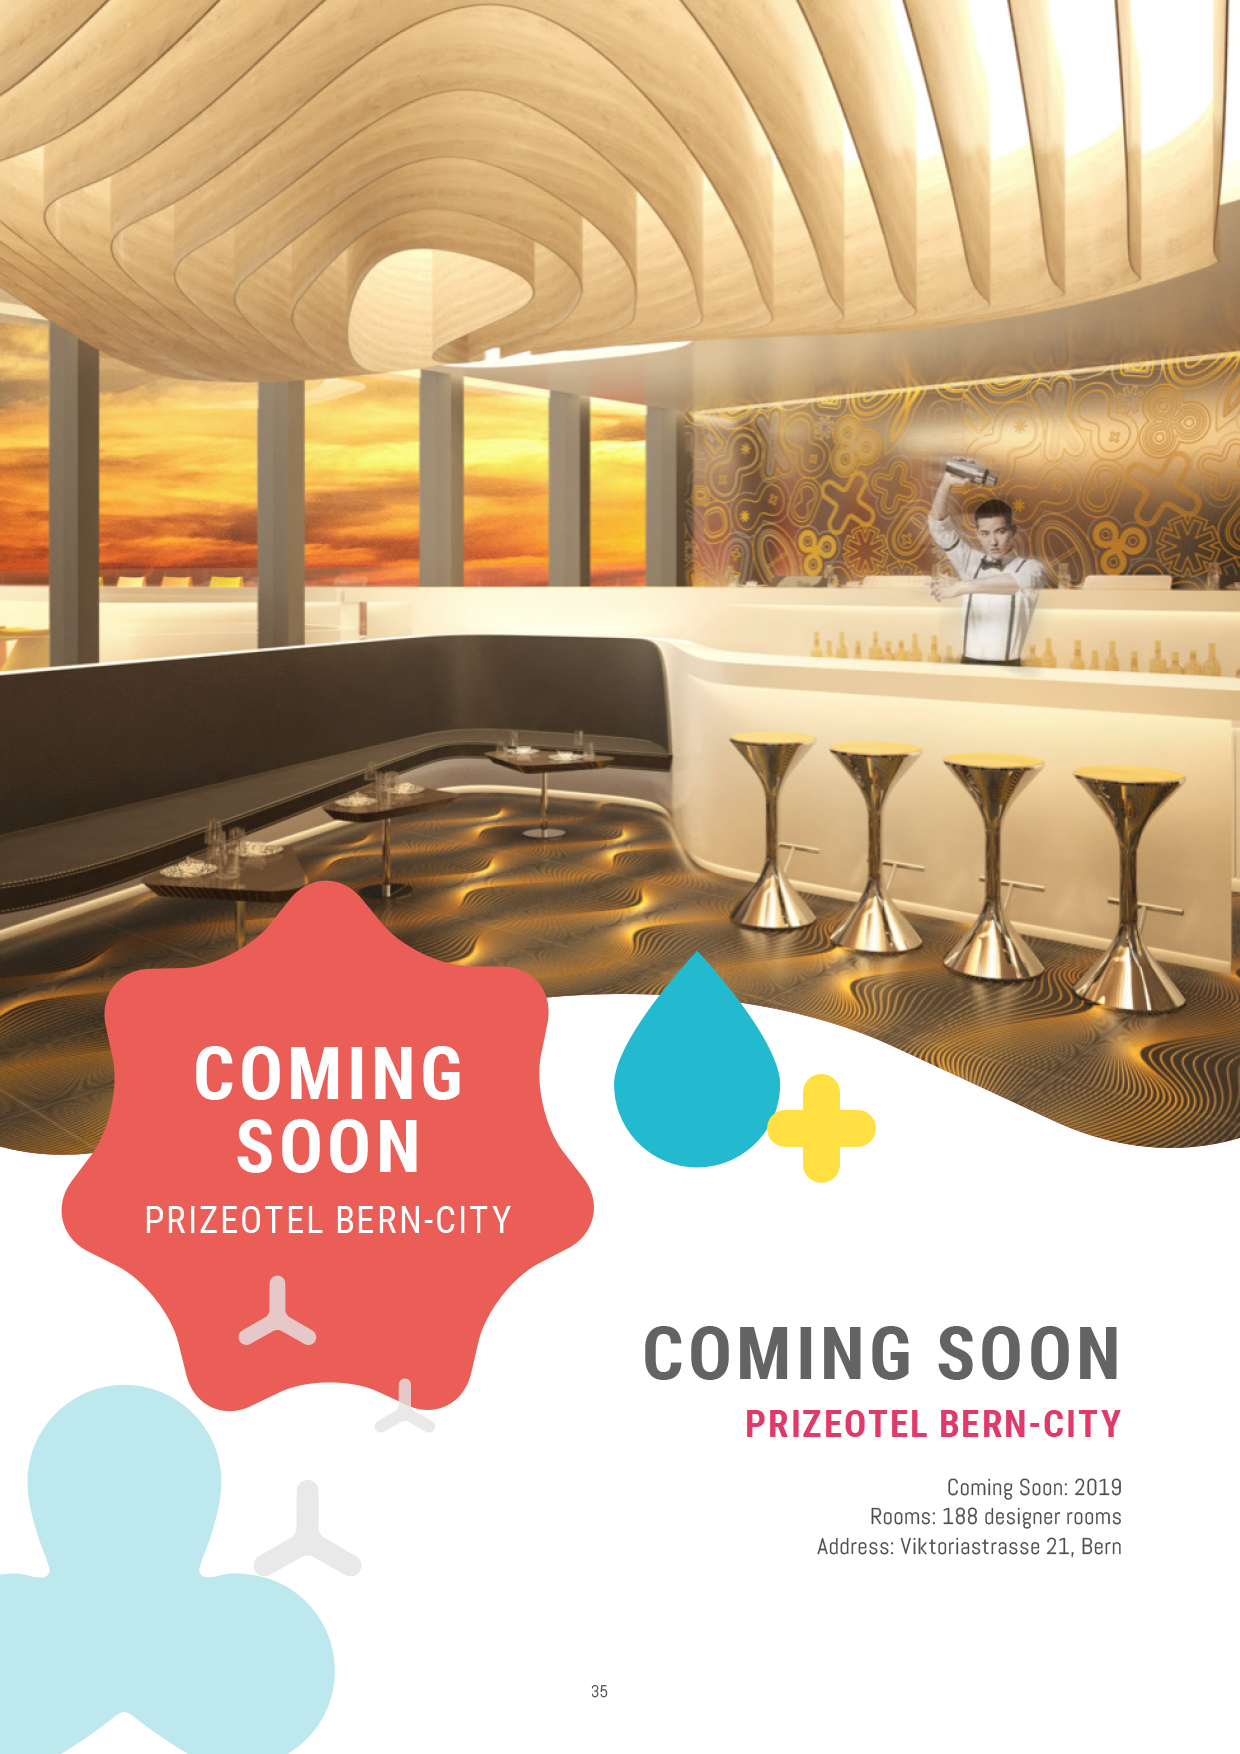 Coming Soon - prizeotel Bern-City